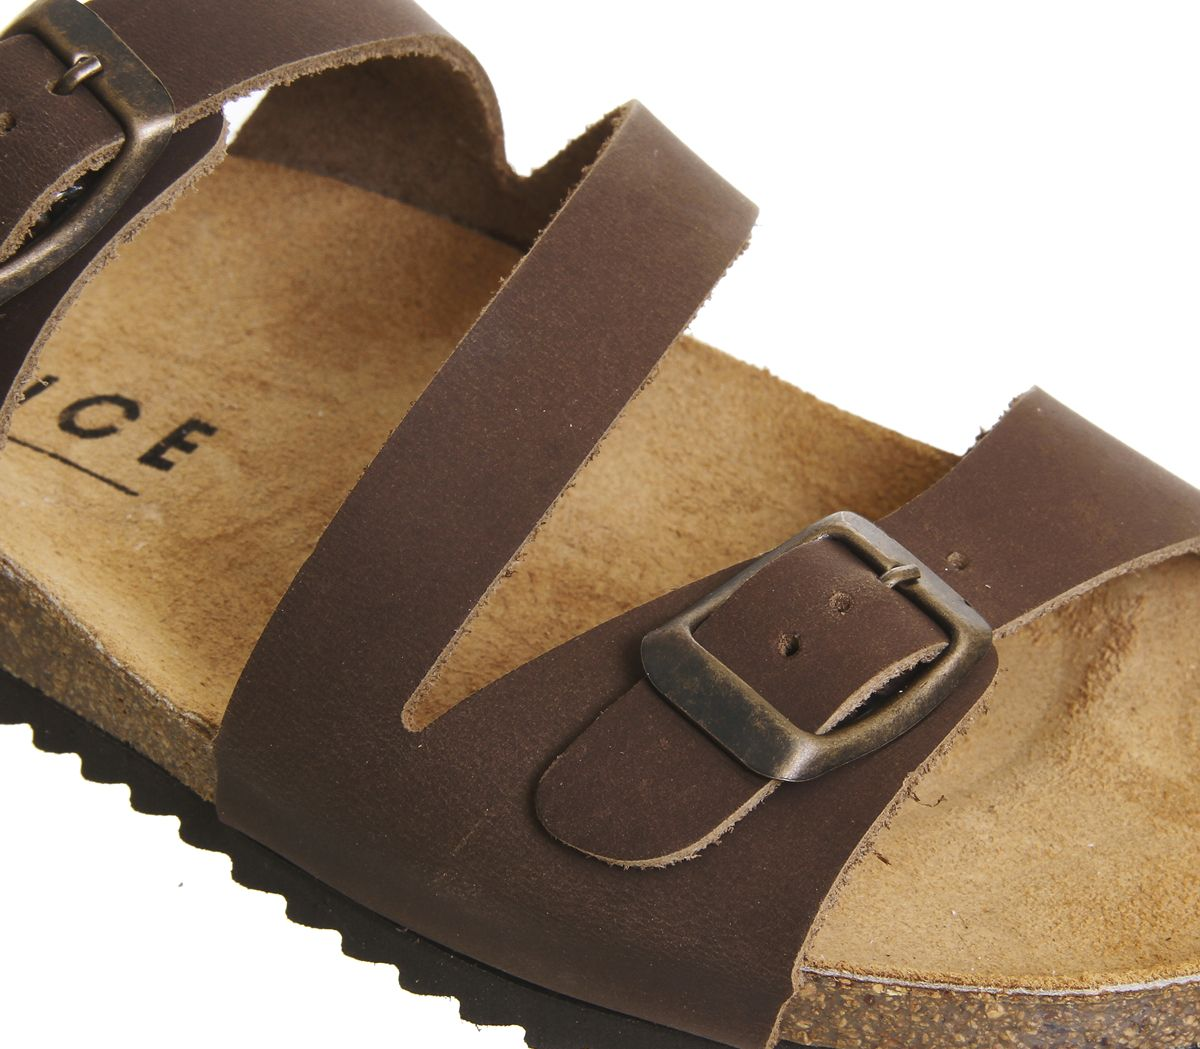 4cffb970d3 Office Bounty Cross Strap Footbed Sandals Brown Leather - Sandals